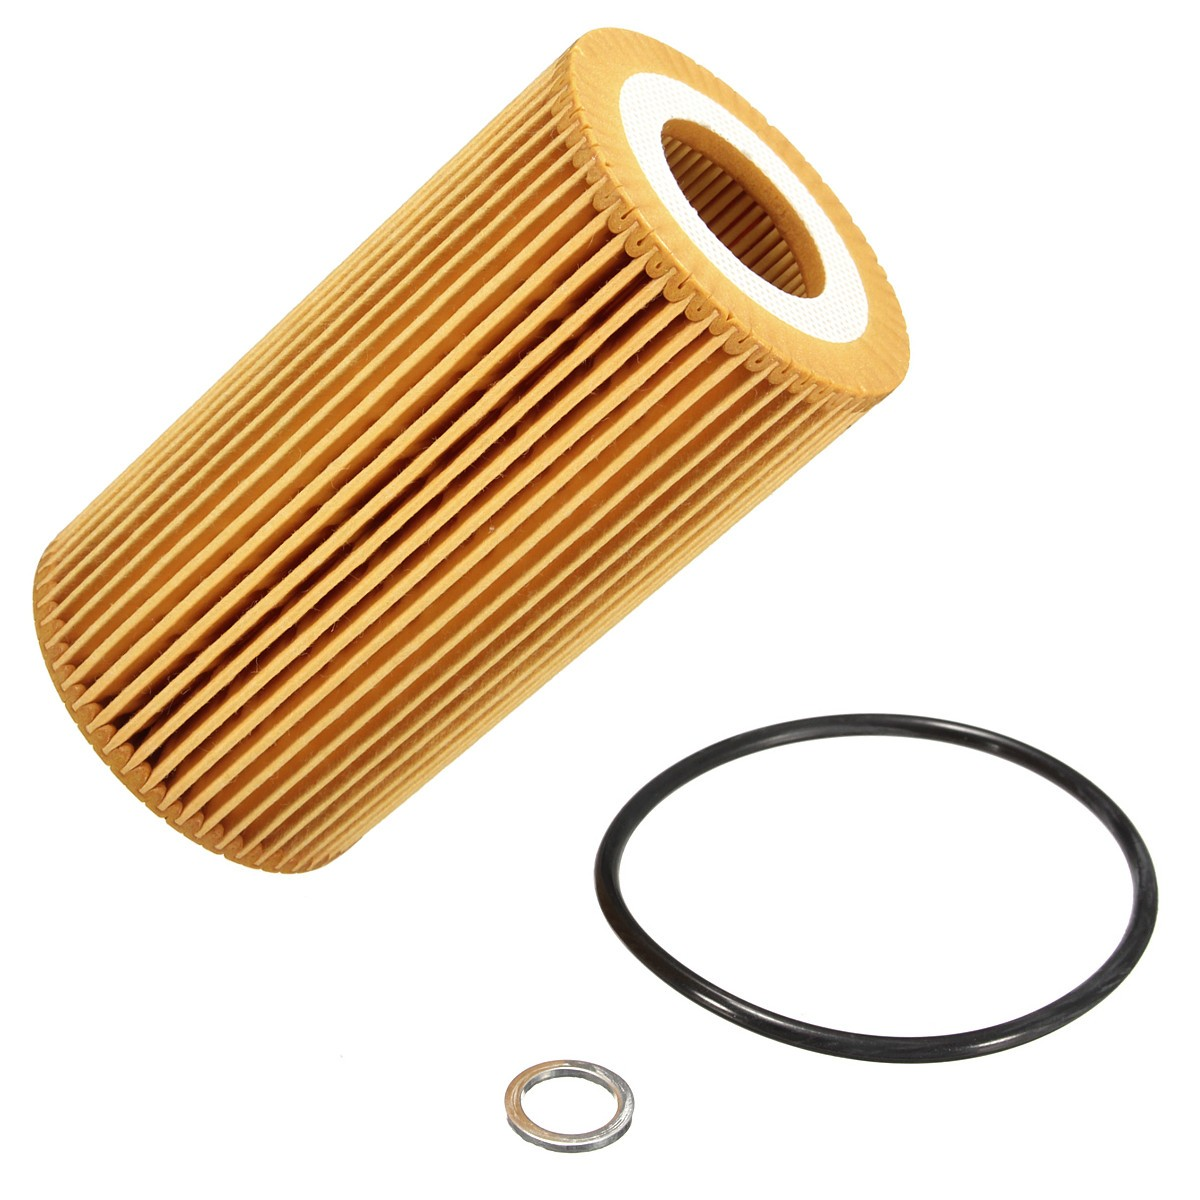 Yellow Engine Oil Filter For Land Rover Freelander 1 2.0L TD4 For BMW 2000-2006 LRF100150LR